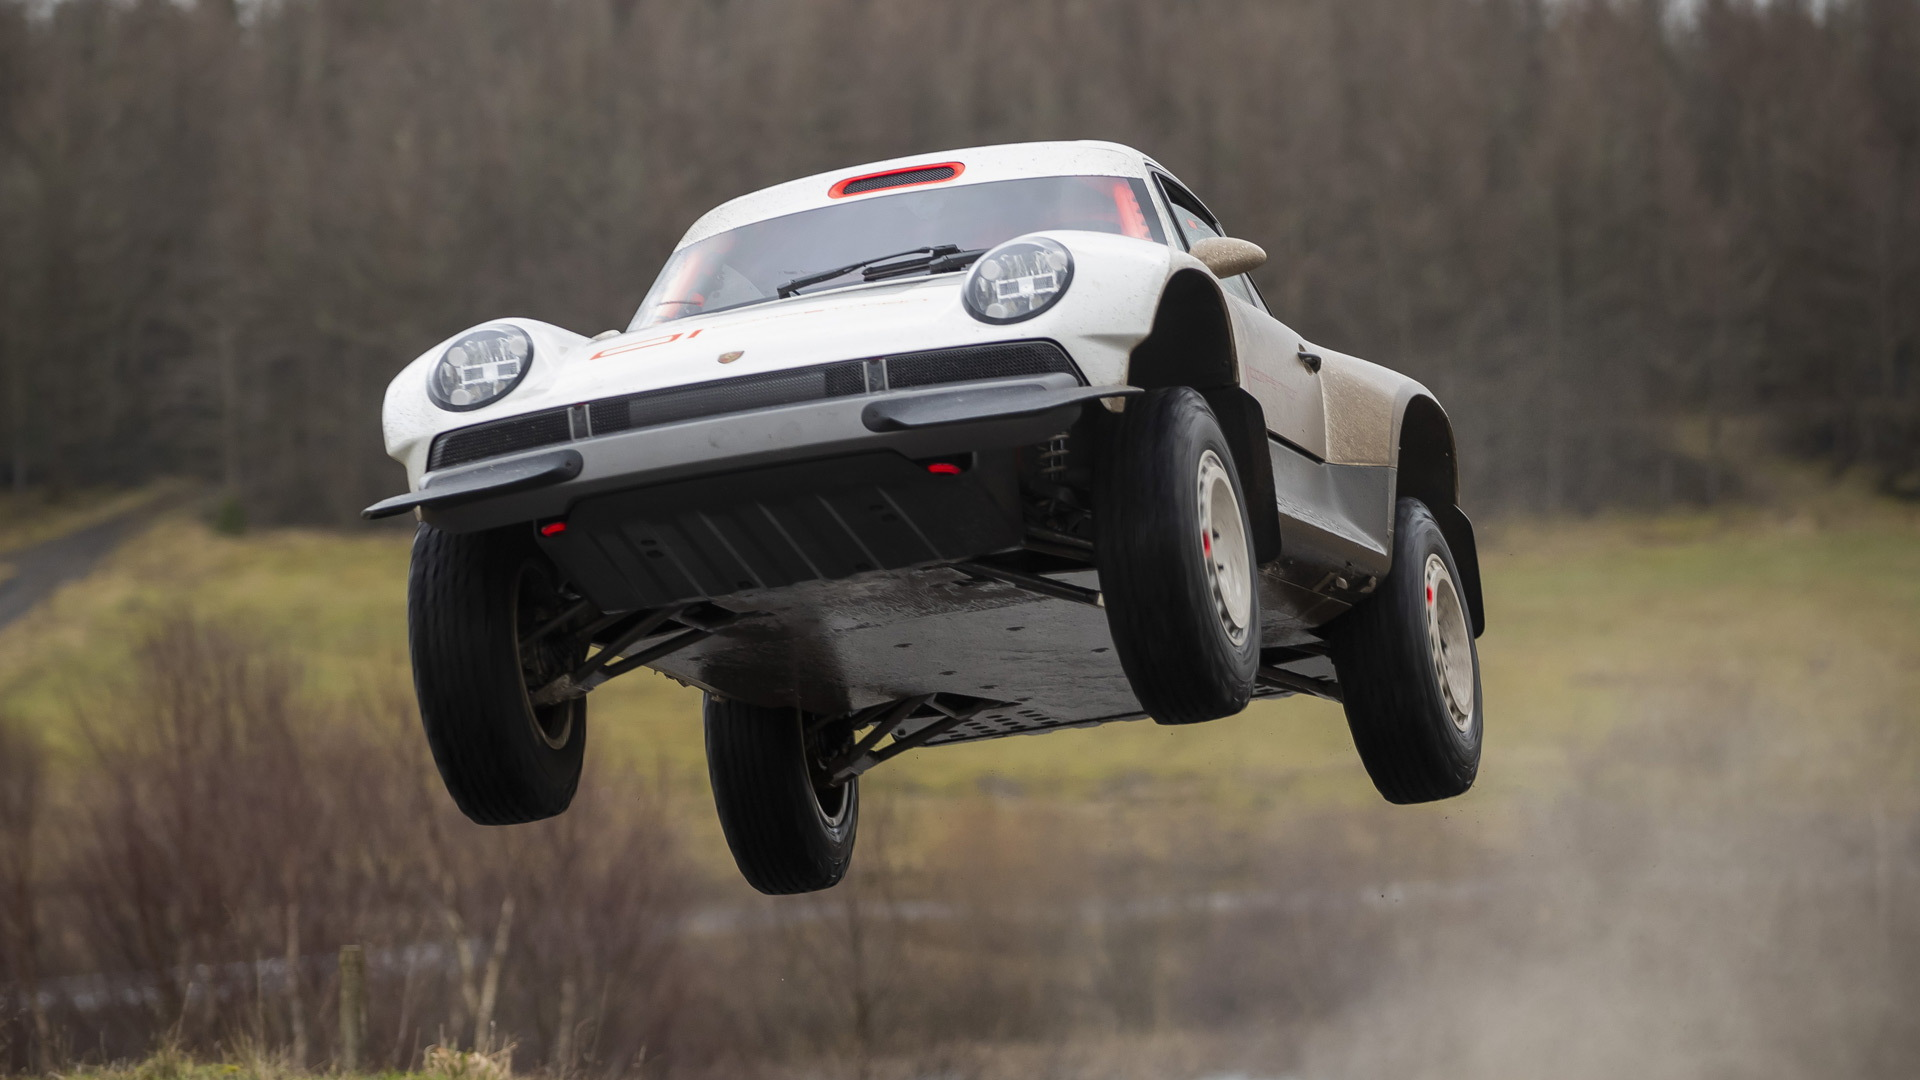 Singer All-Terrain Competition Study (ACS)